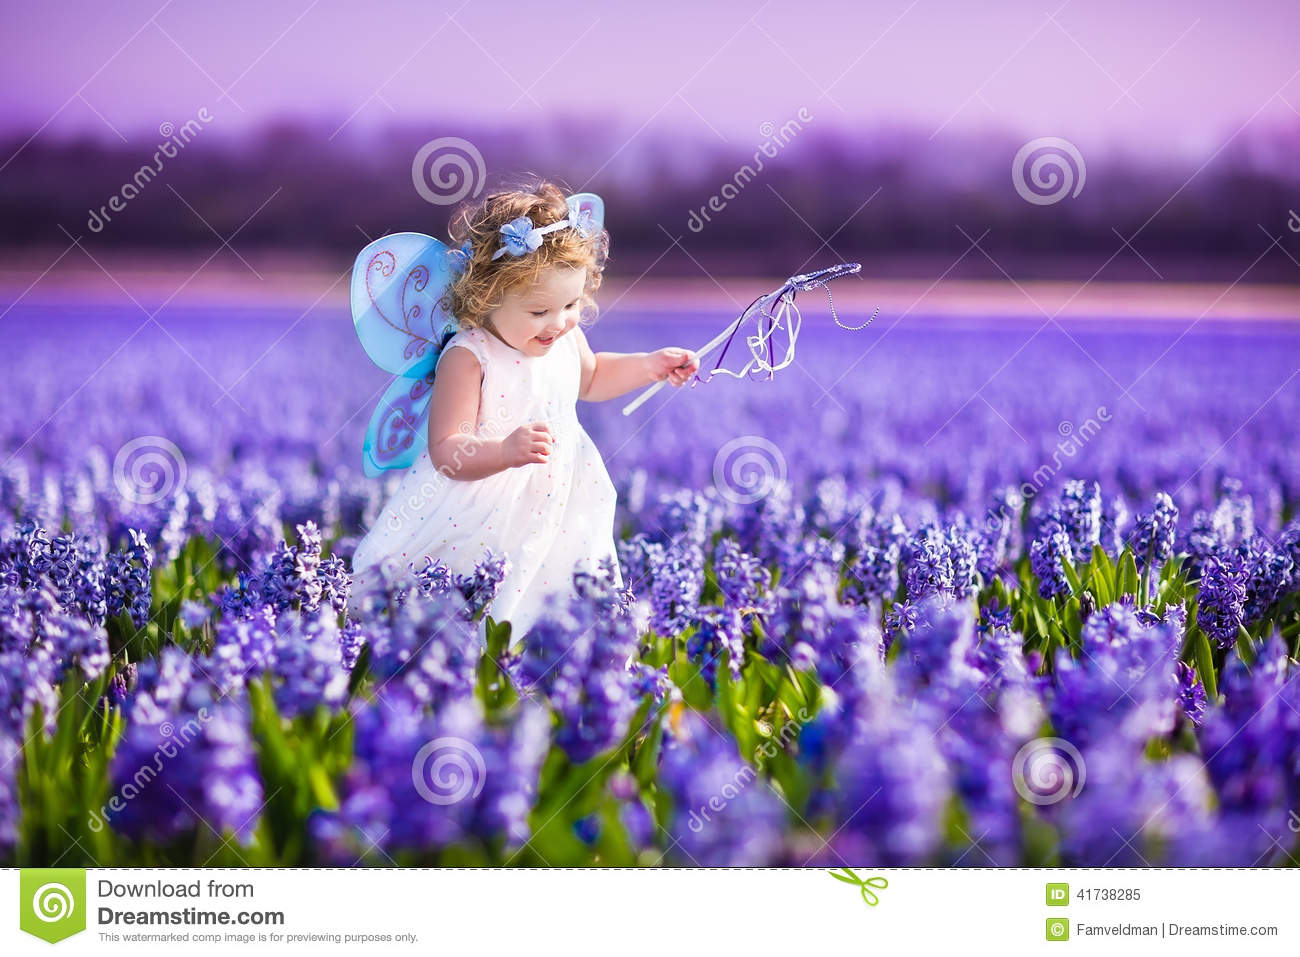 Cute Baby Girl Child Wallpaper Cute Toddler Girl In Fairy Costume In A Flower Field Stock